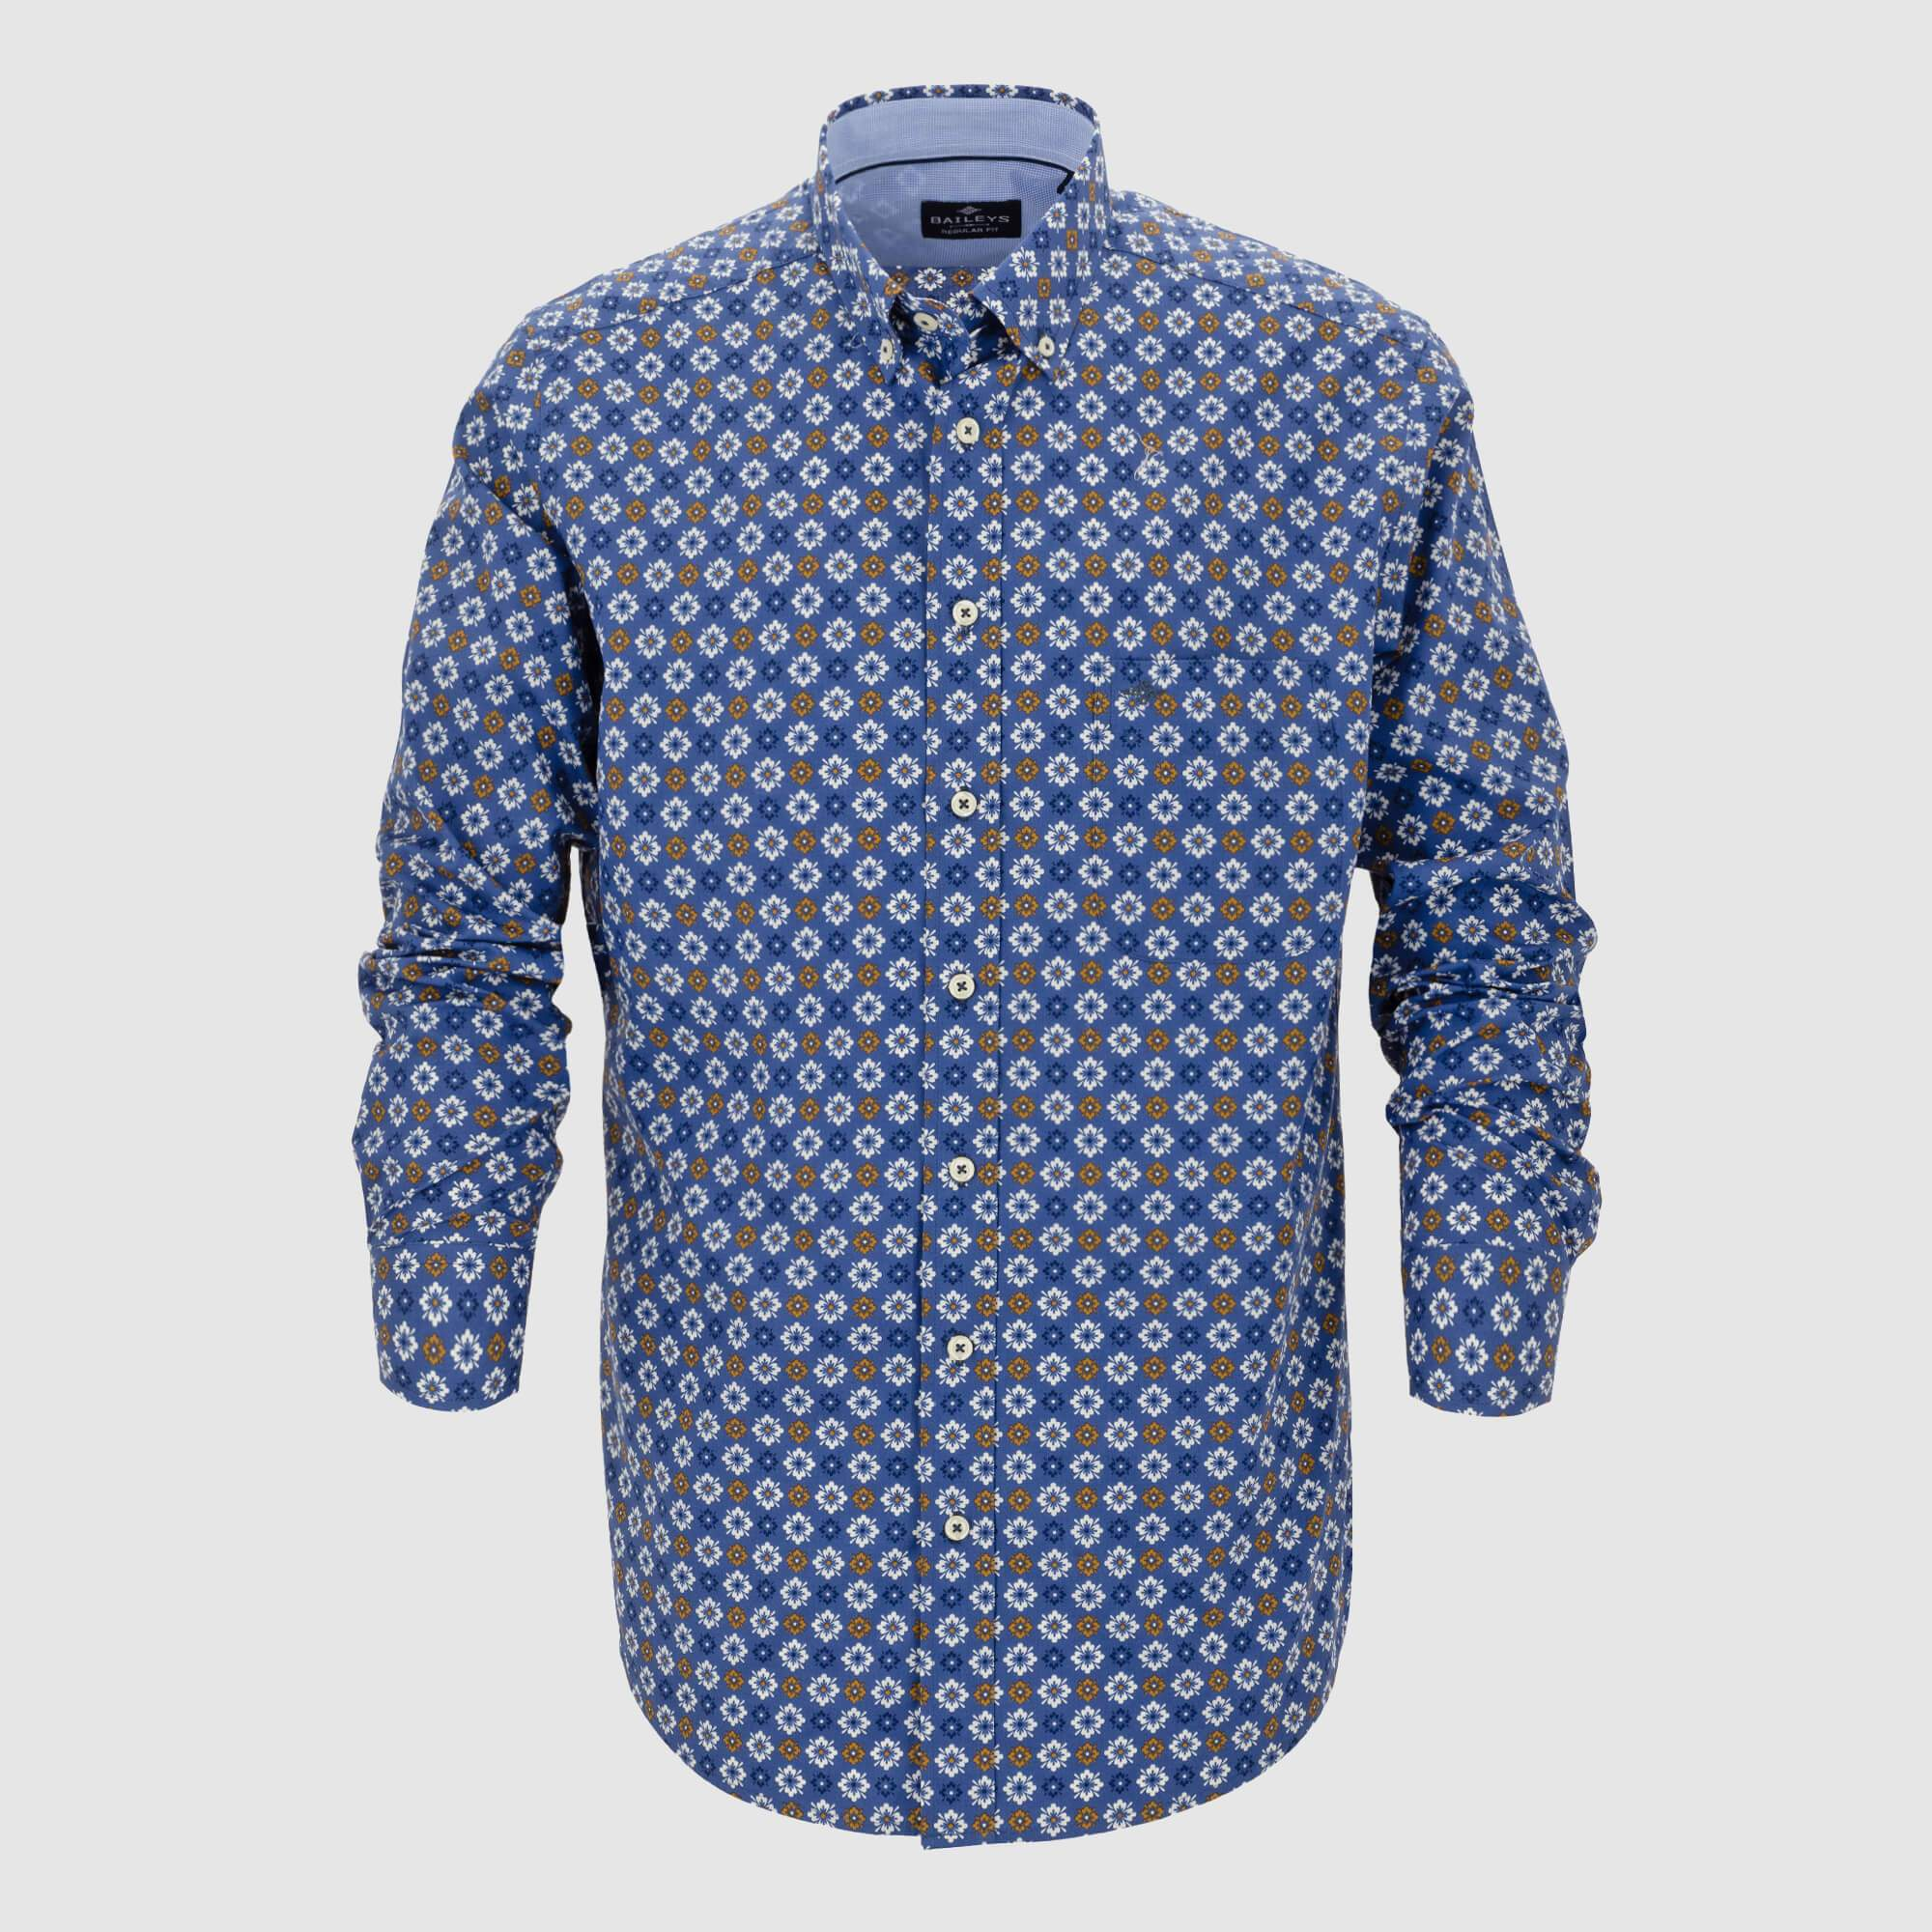 Camisa estampada corte regular fit 927682